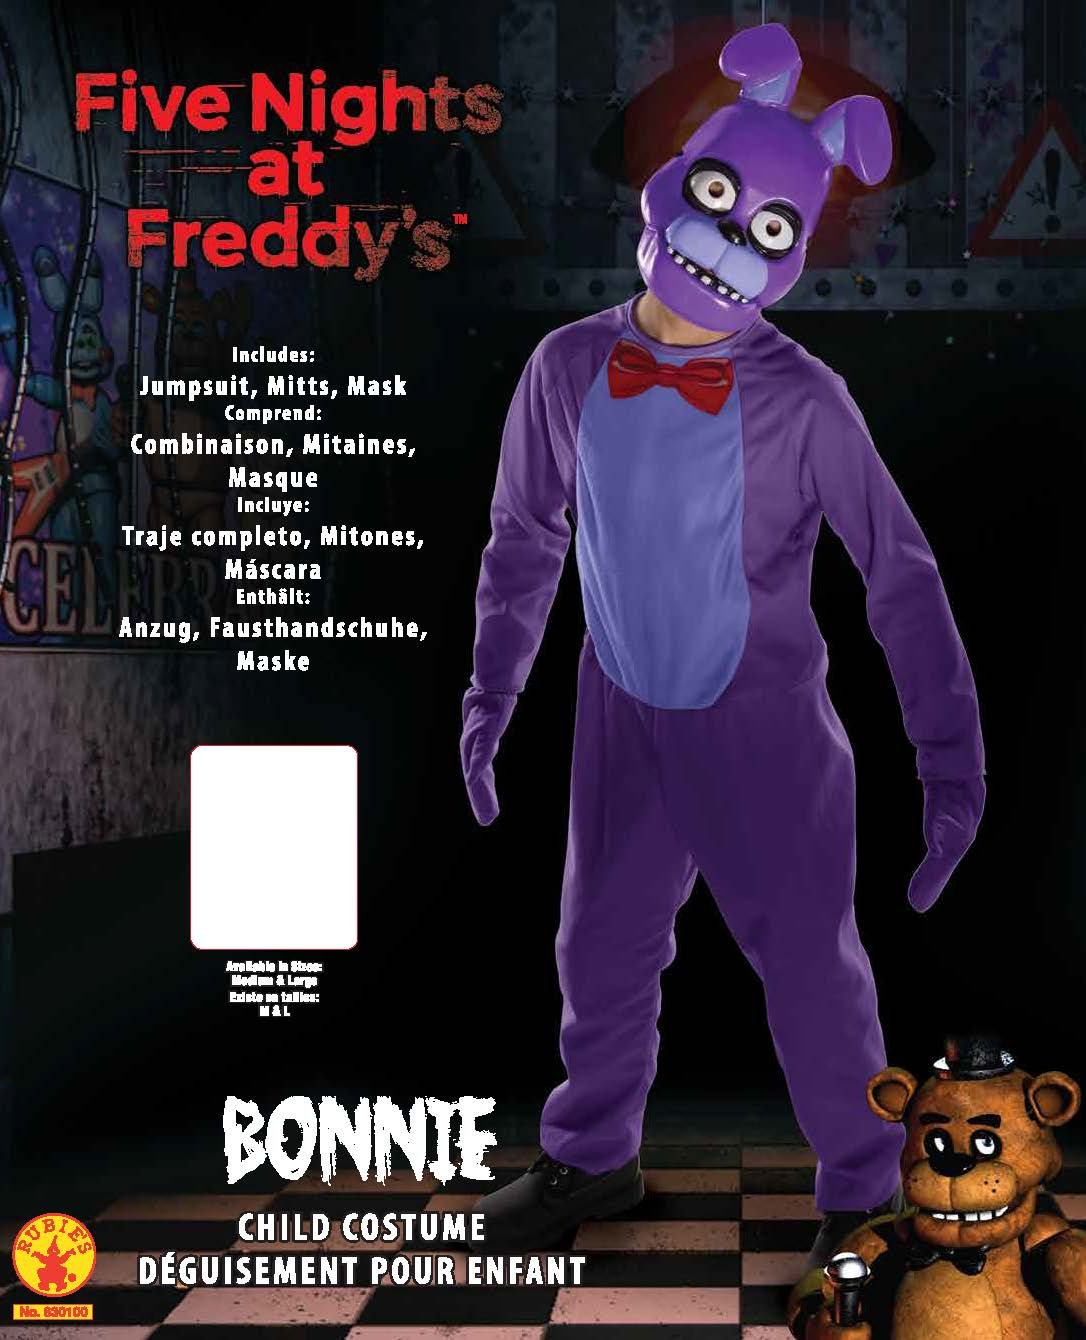 Fnaf bonnie costume for sale - Amazon Com Five Nights Child S Value Priced At Freddy S Bonnie Costume Medium Toys Games